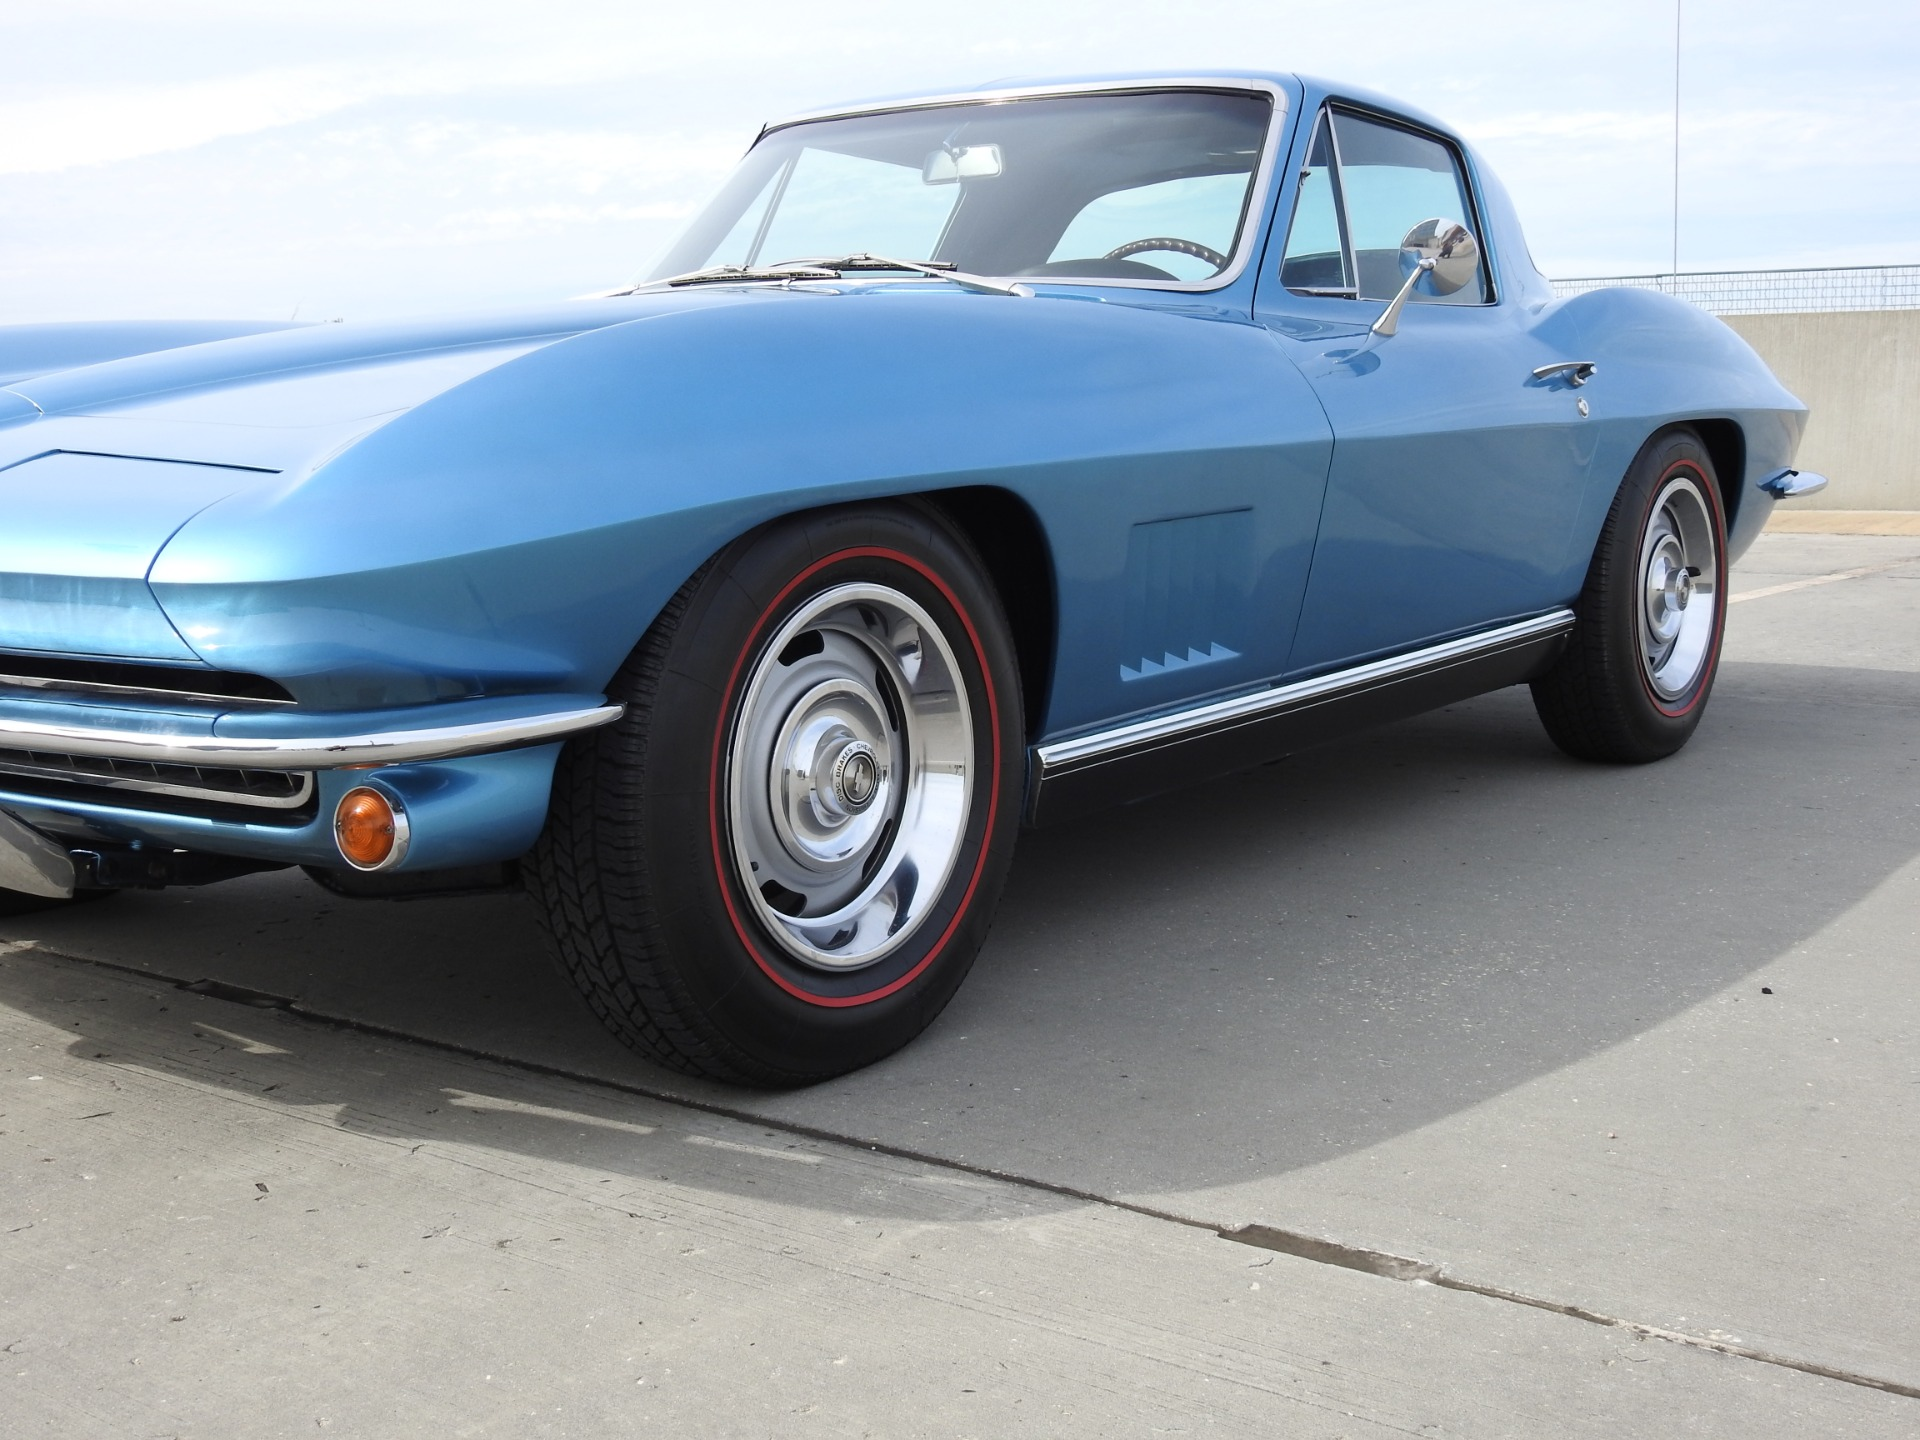 Used-1967-Chevrolet-Corvette-Coupe-L79-**-67000-Original-Miles-**-for-sale-Jackson-MS